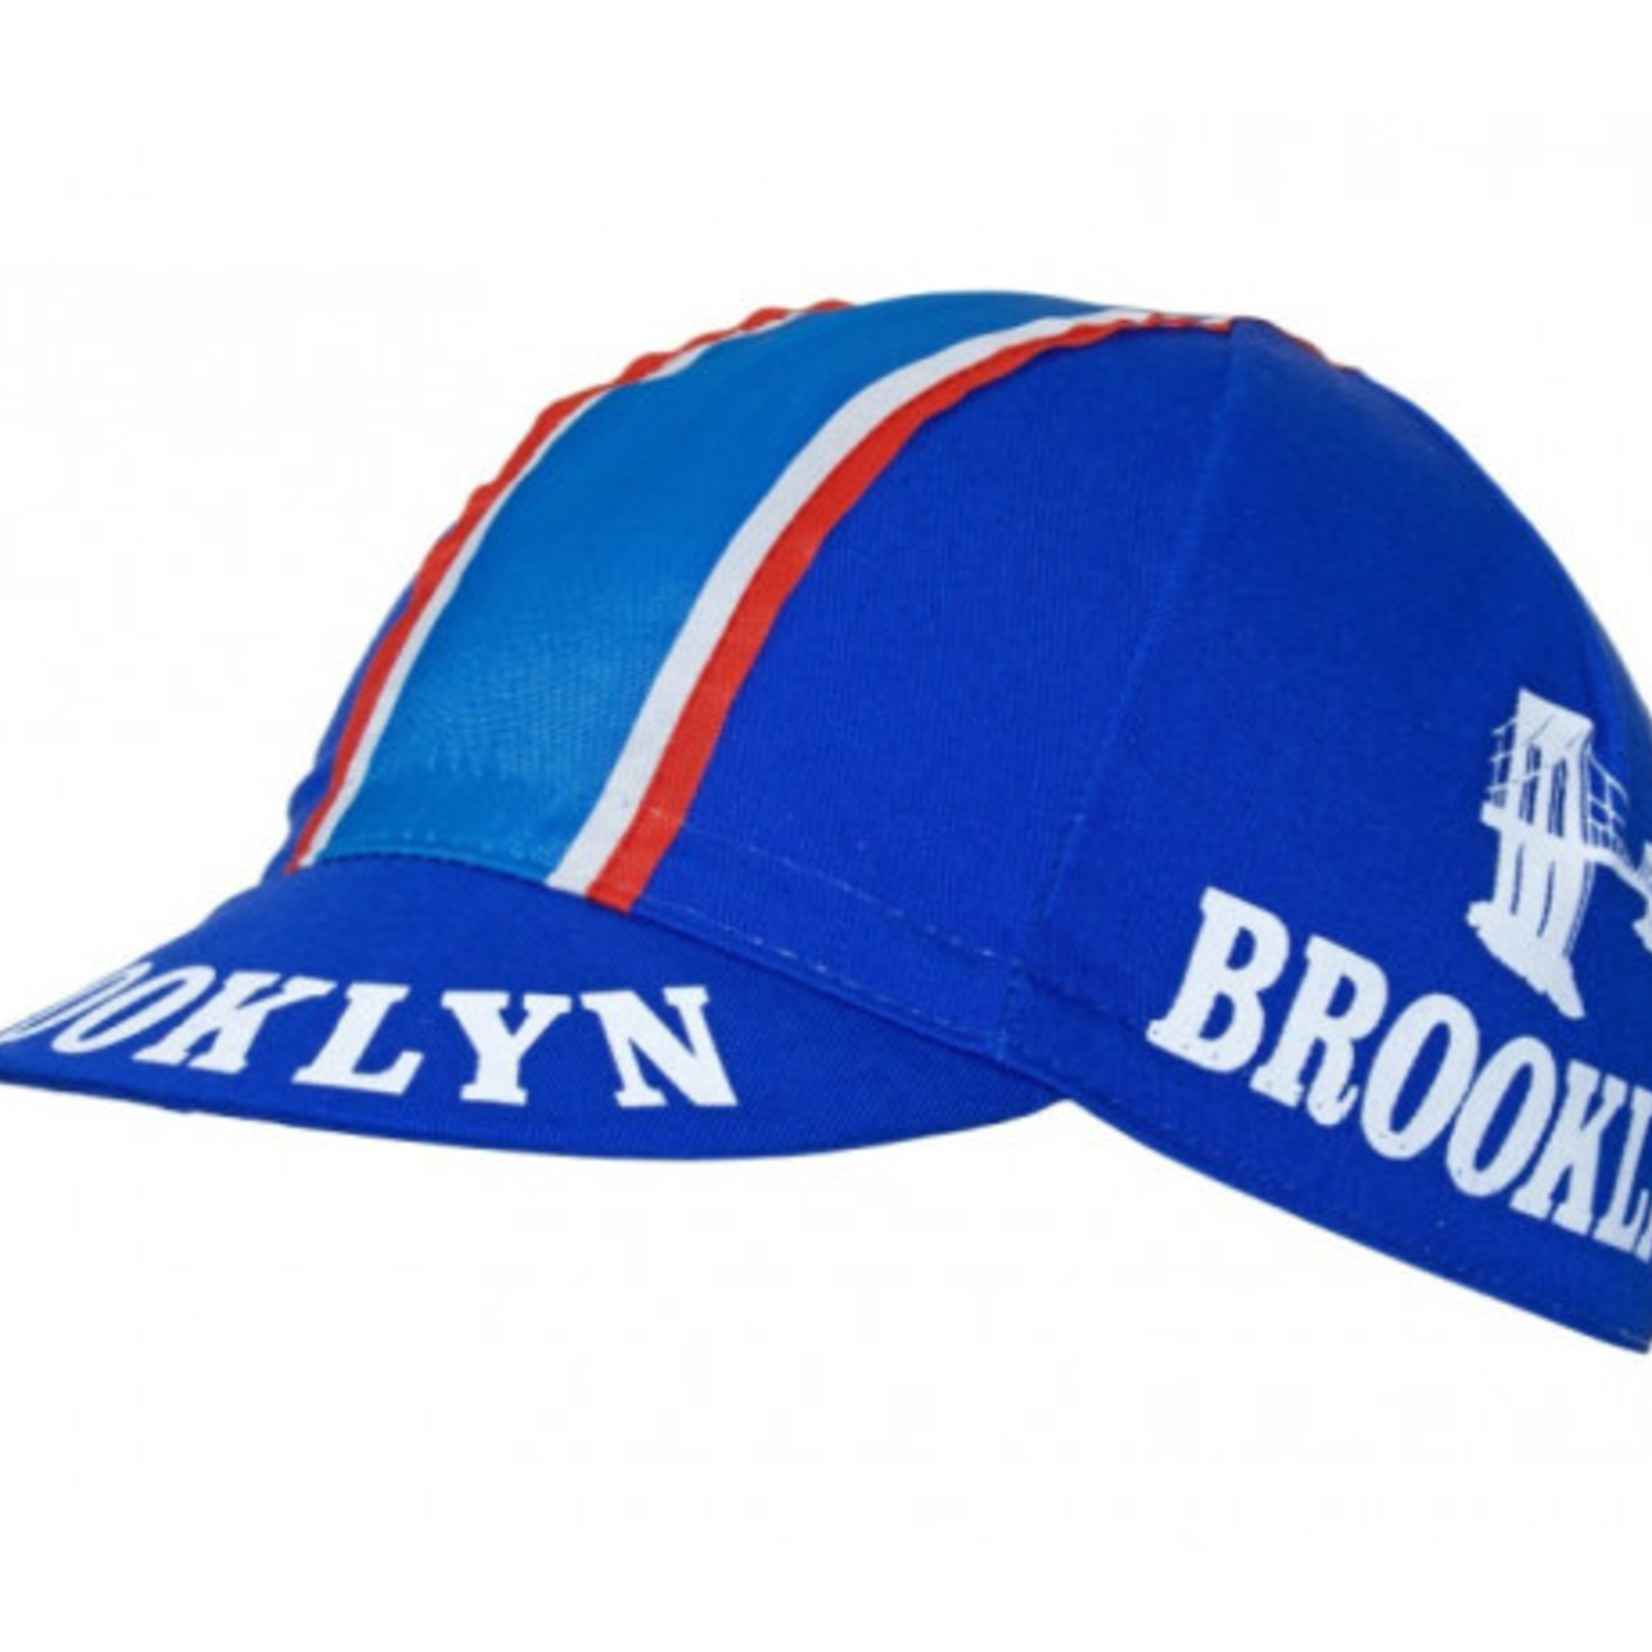 Cycling cap Brooklyn